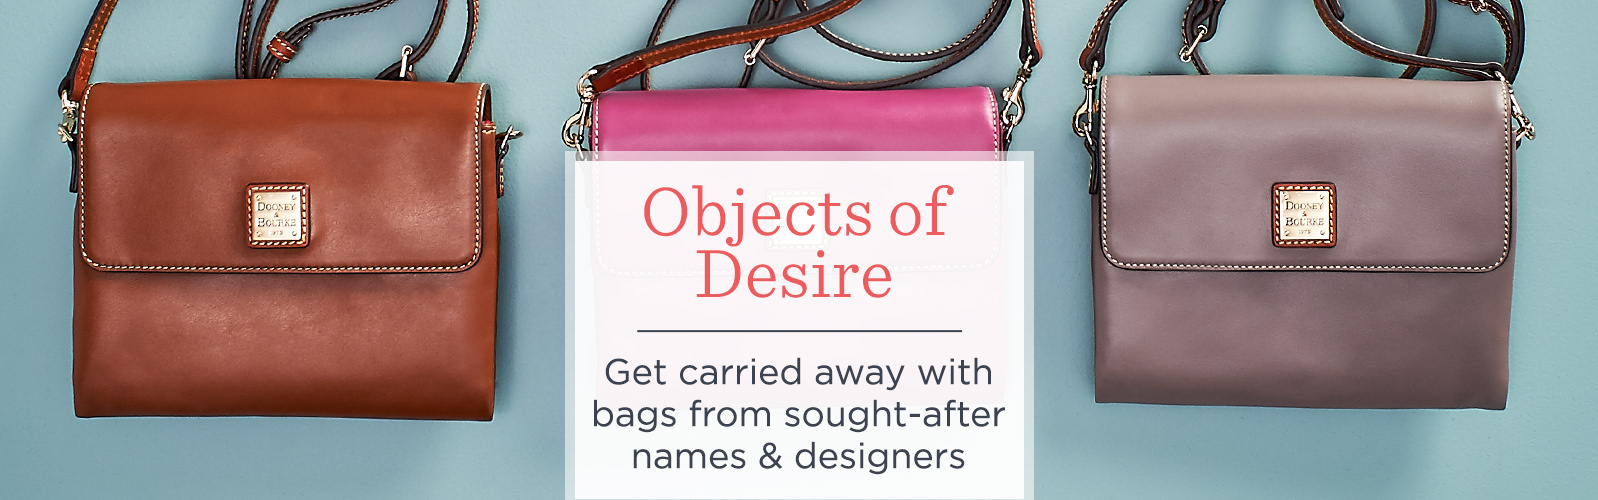 Objects Of Desire Get Carried Away With Bags From Sought After Names Designers